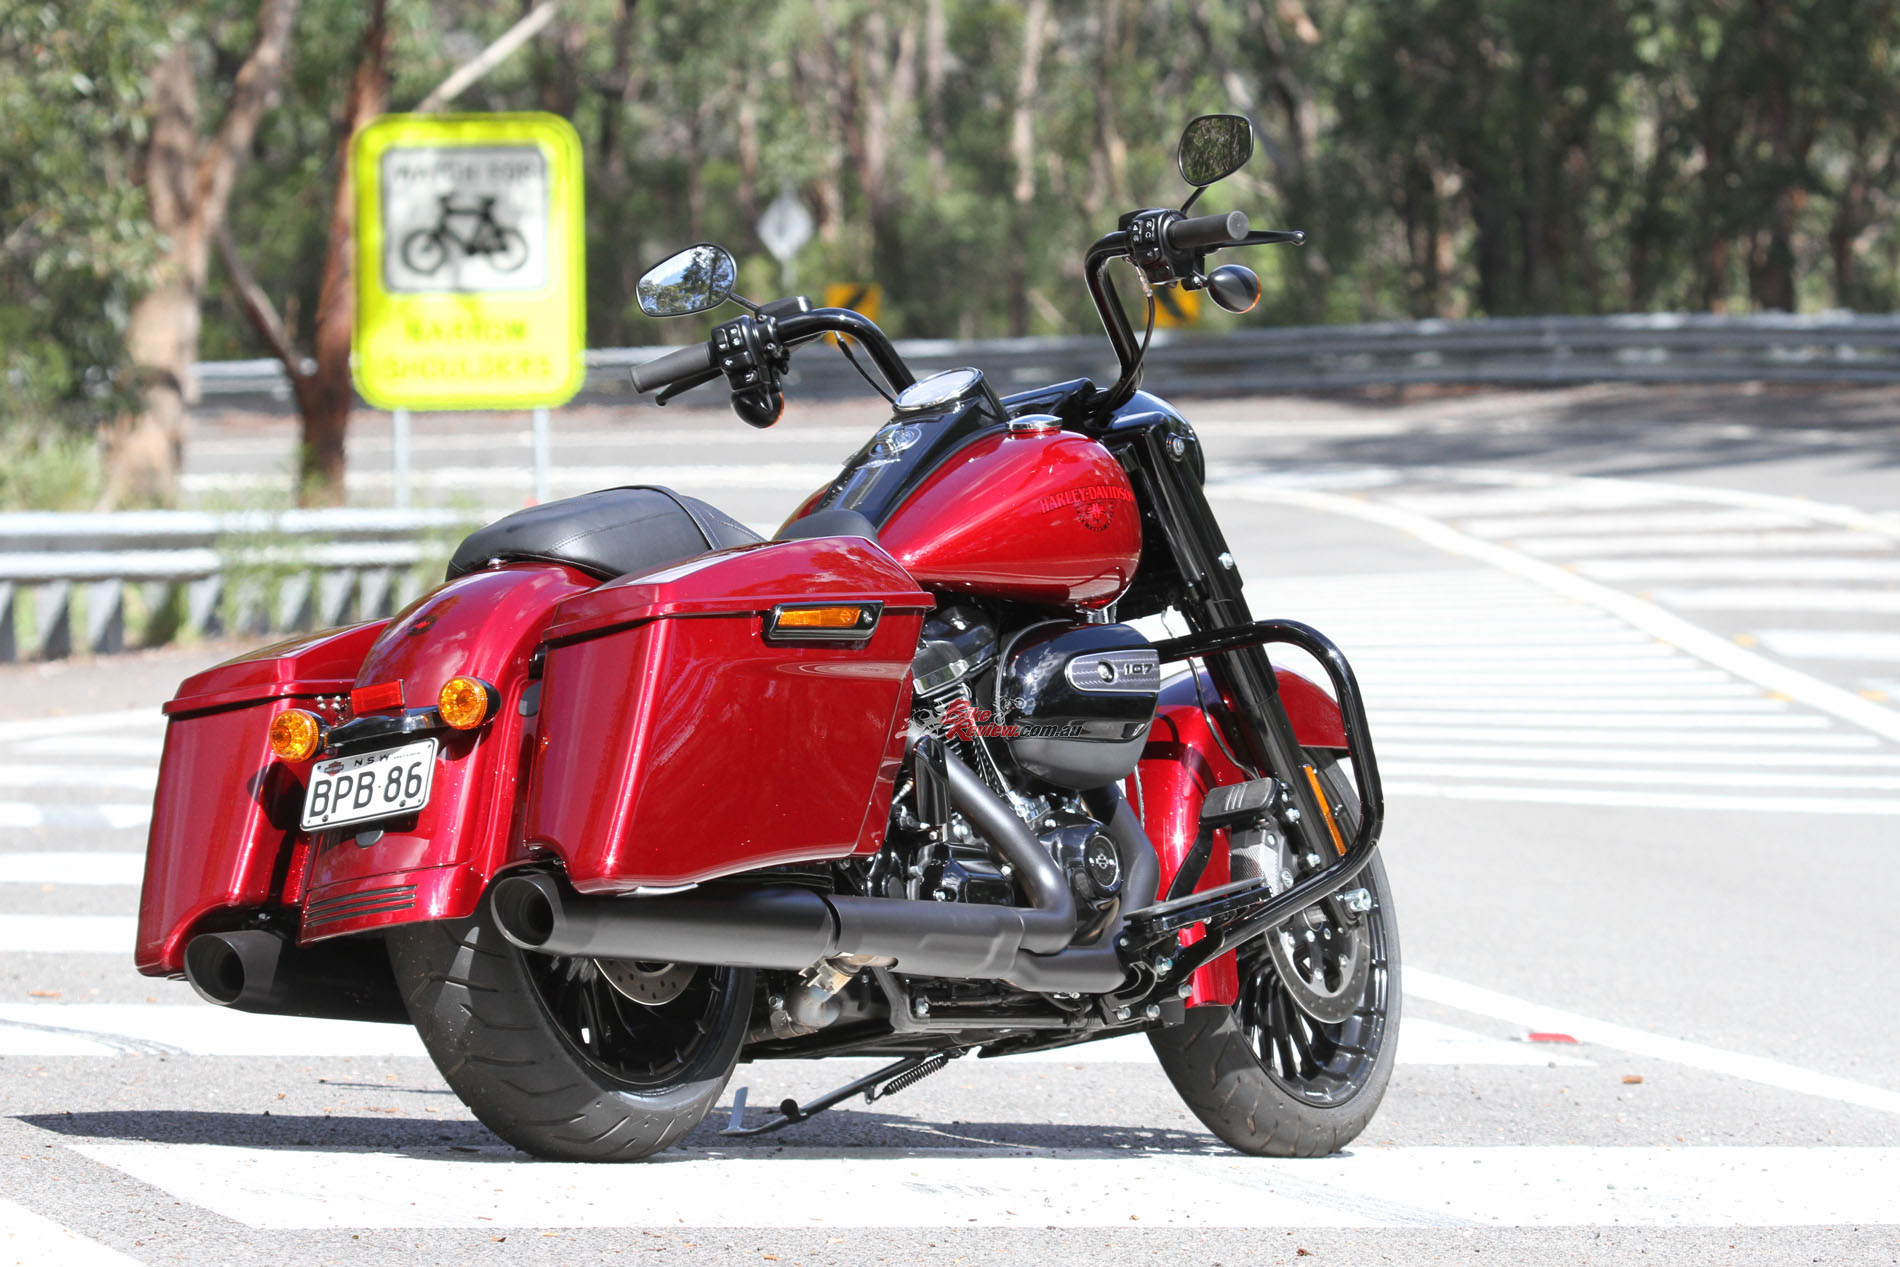 2017 Harley Road King Seat Height